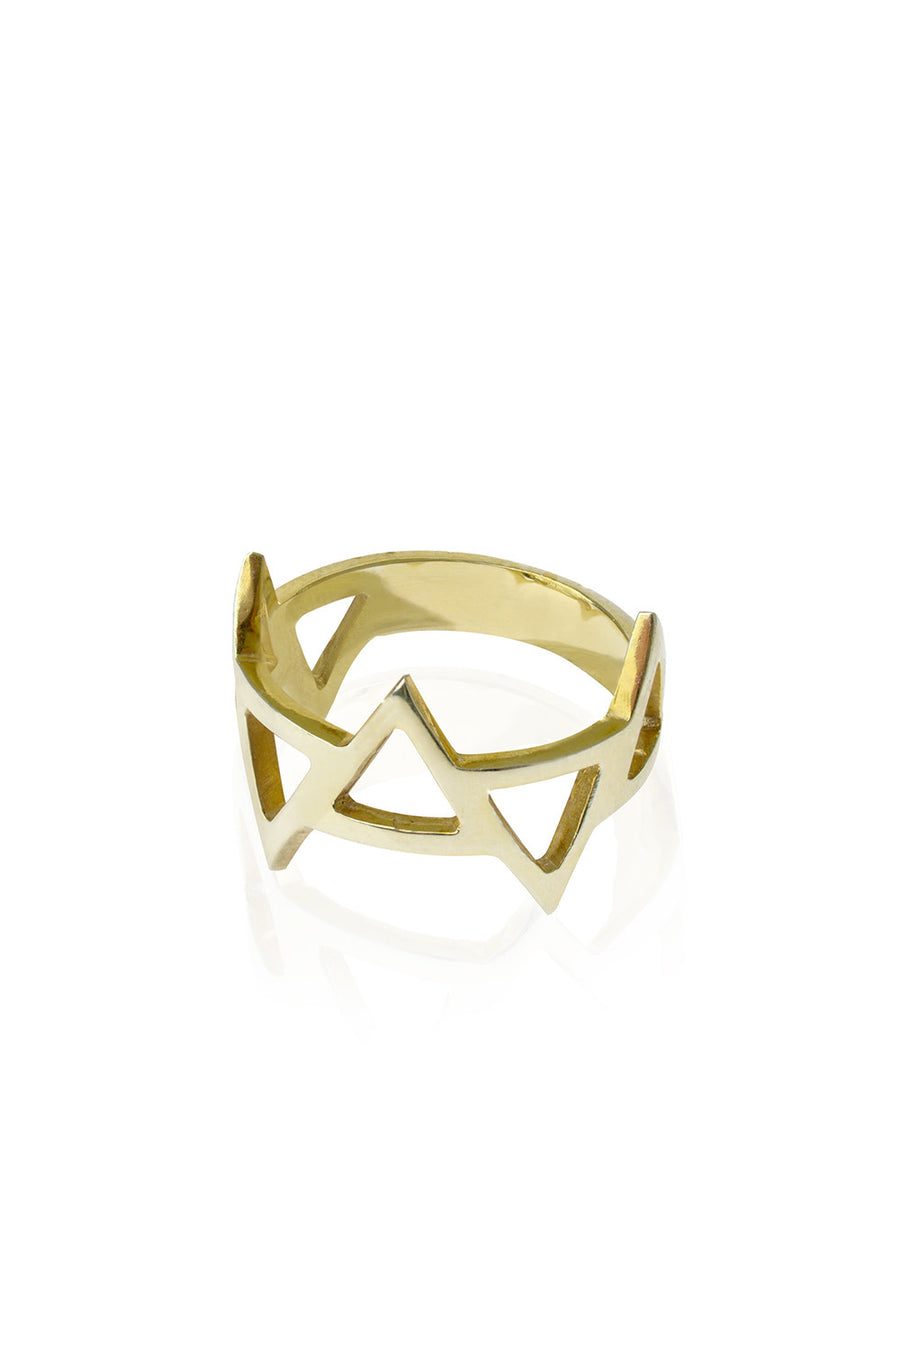 Ladder of Life, Gold Ring